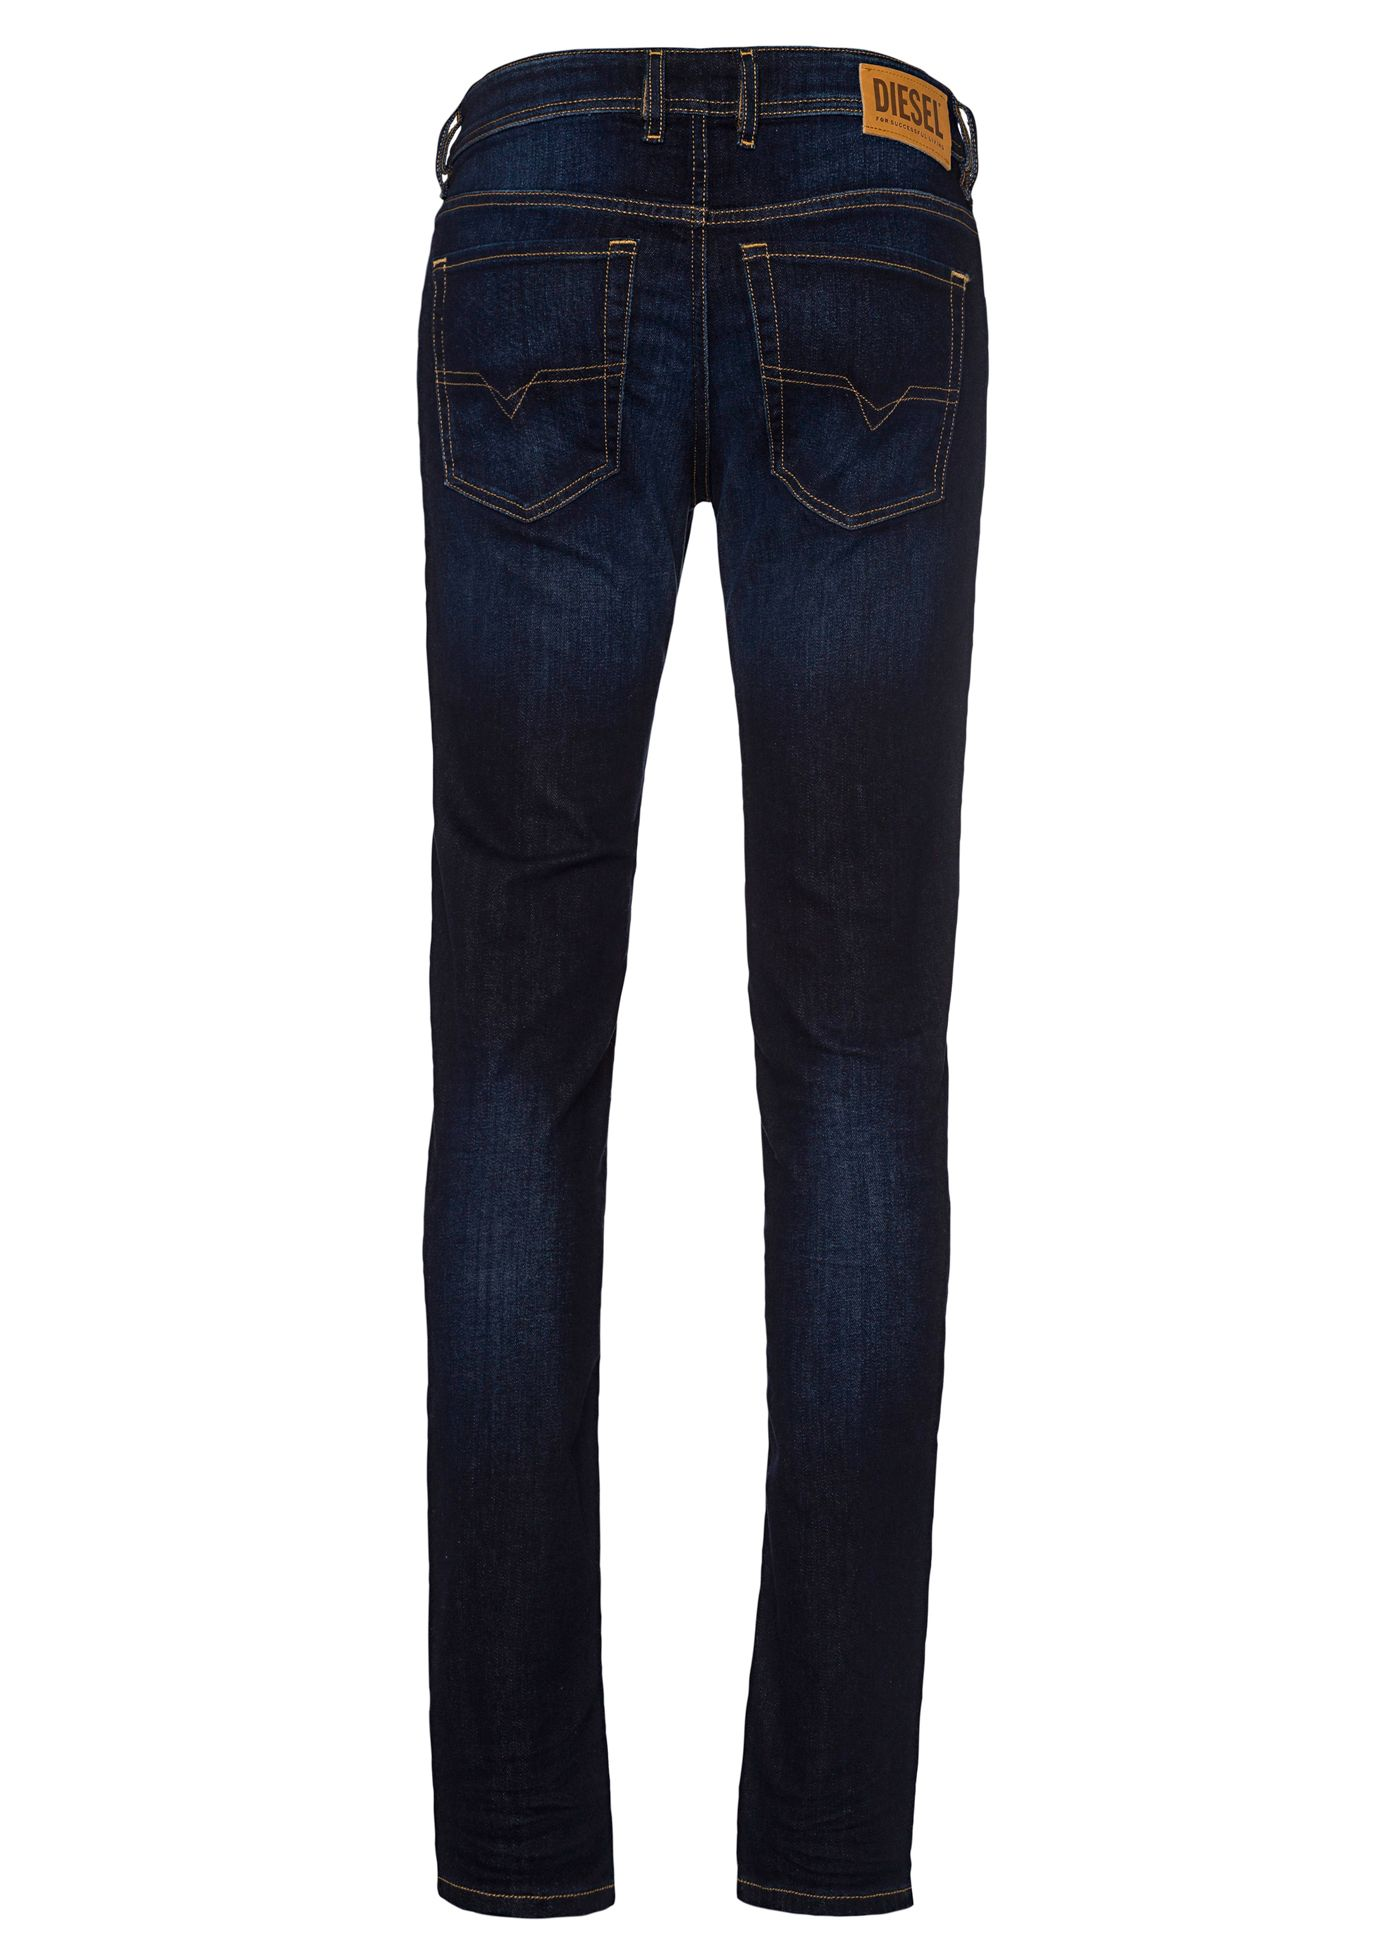 SLEENKER-X L.34 TROUSERS image number 1